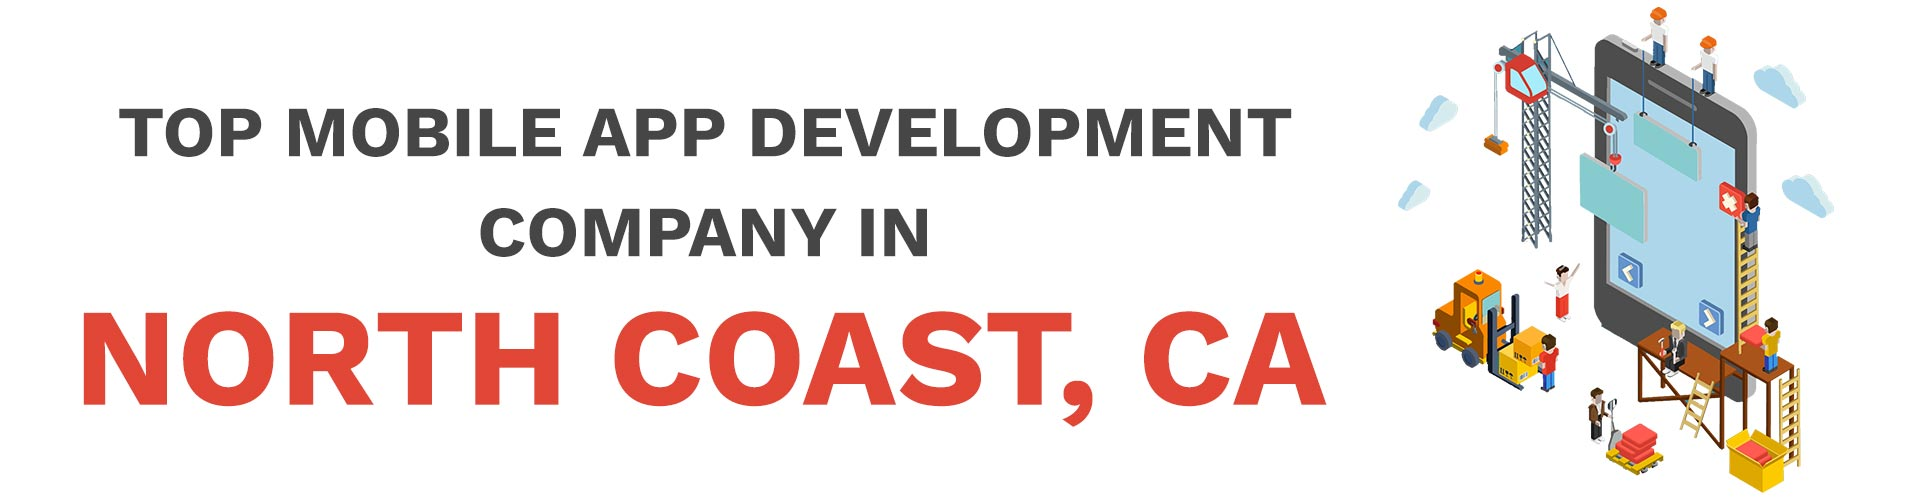 mobile app development company north coast